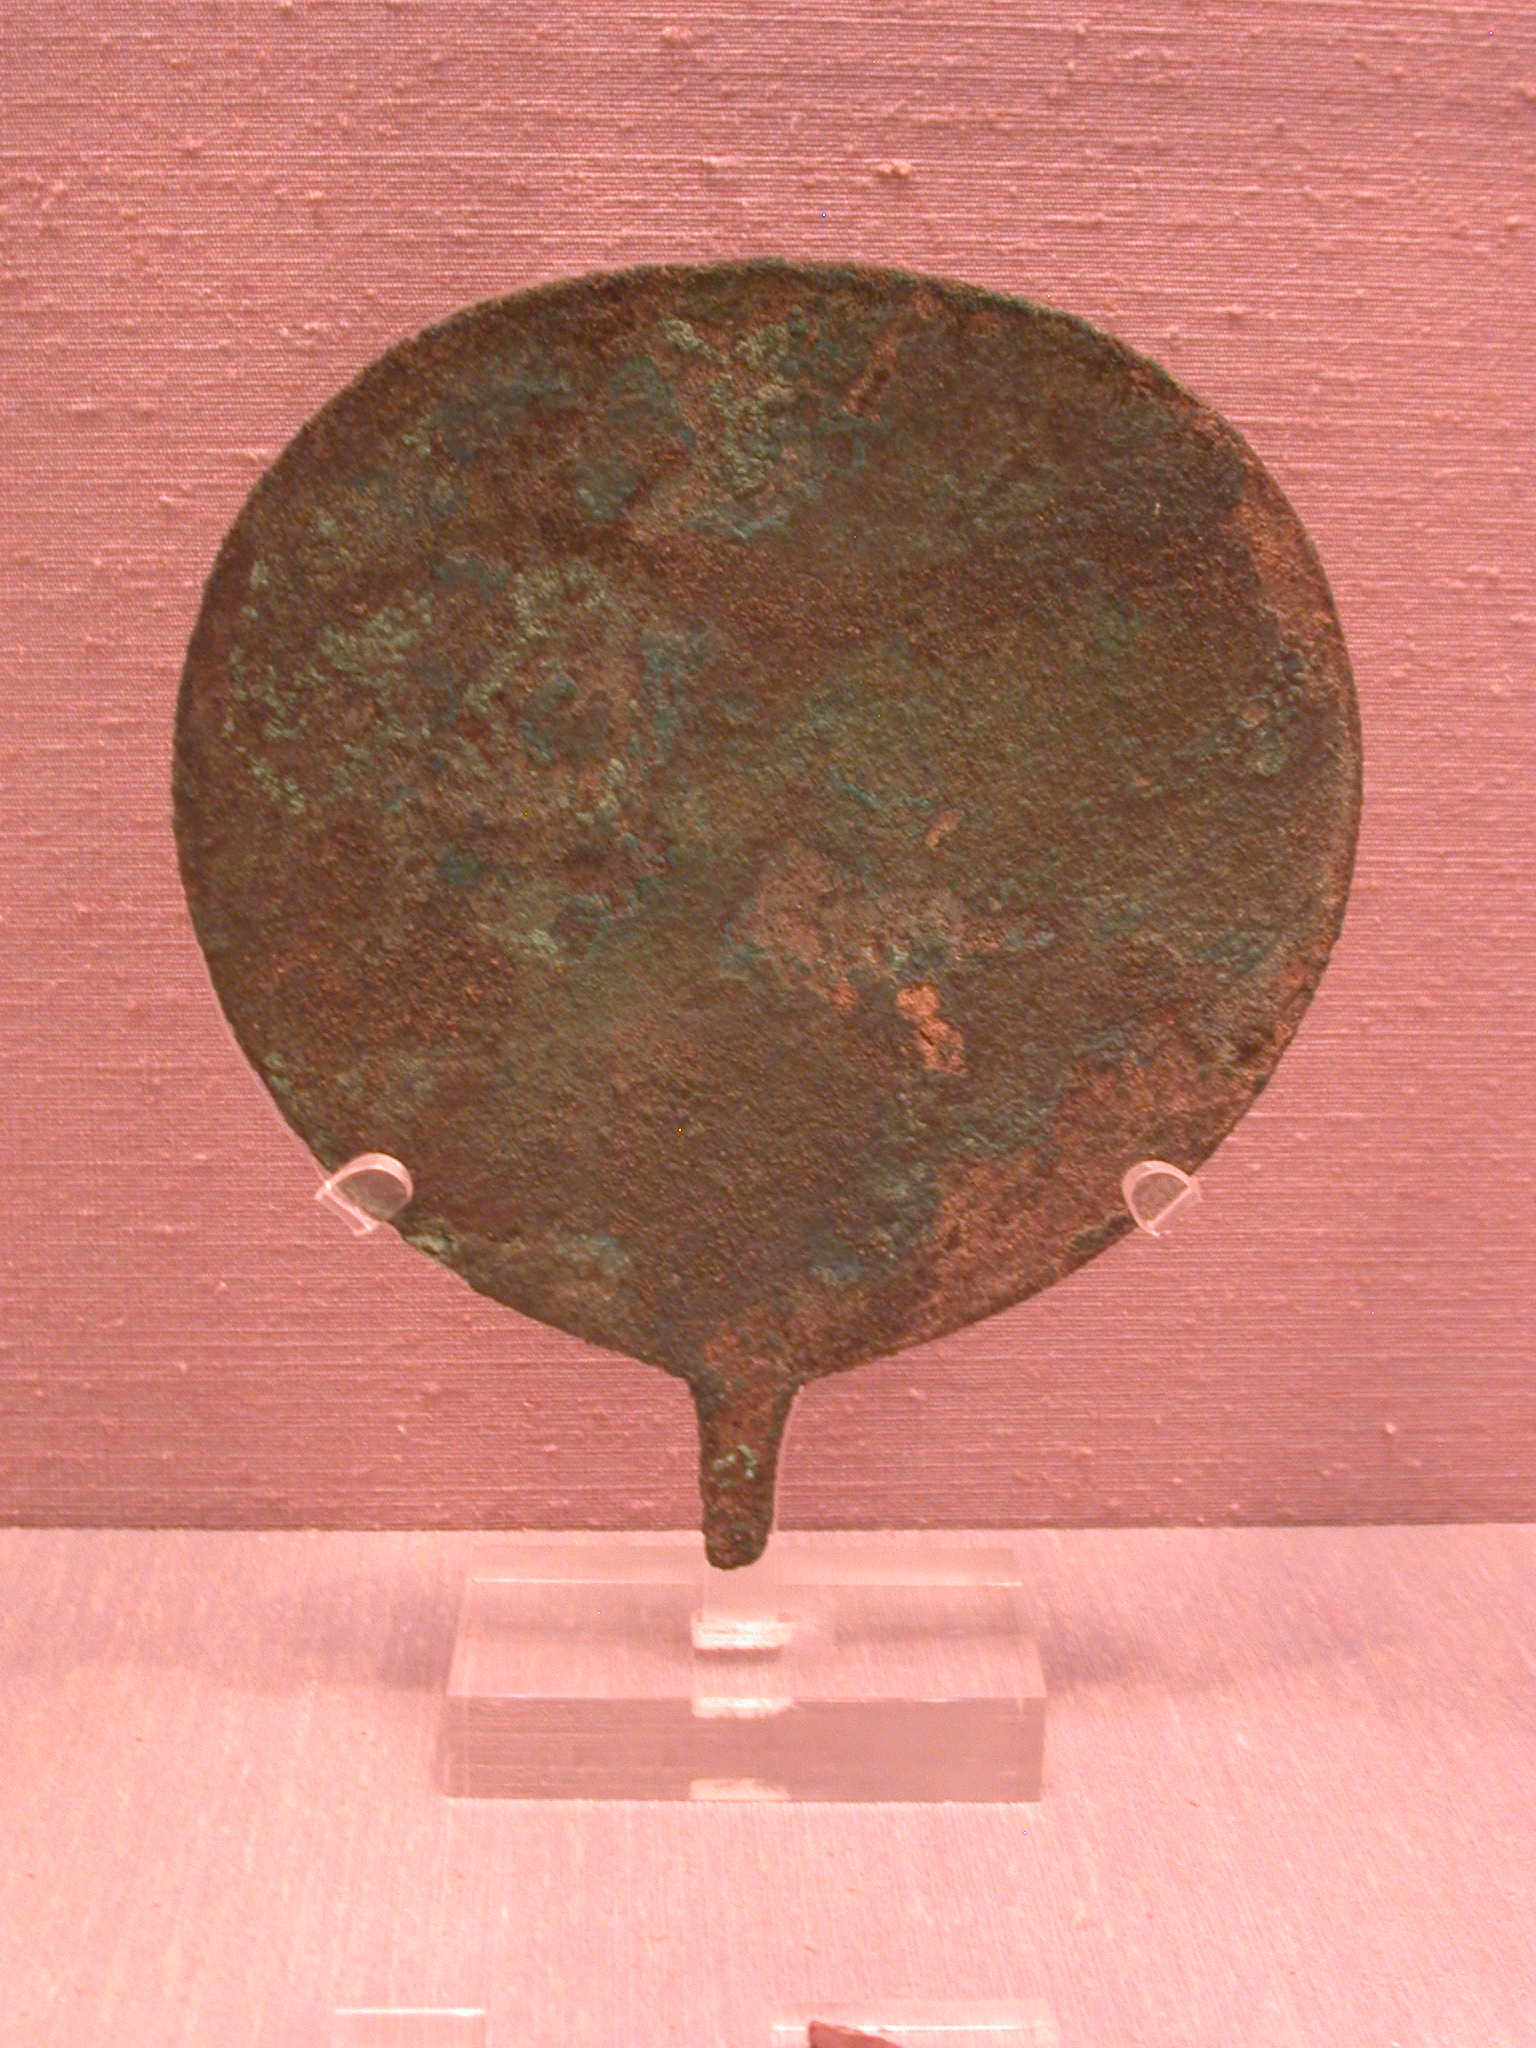 Mirror, Copper Alloy, Sanam, 25th Dynasty Sudan, Fitzwilliam Museum, Cambridge, England